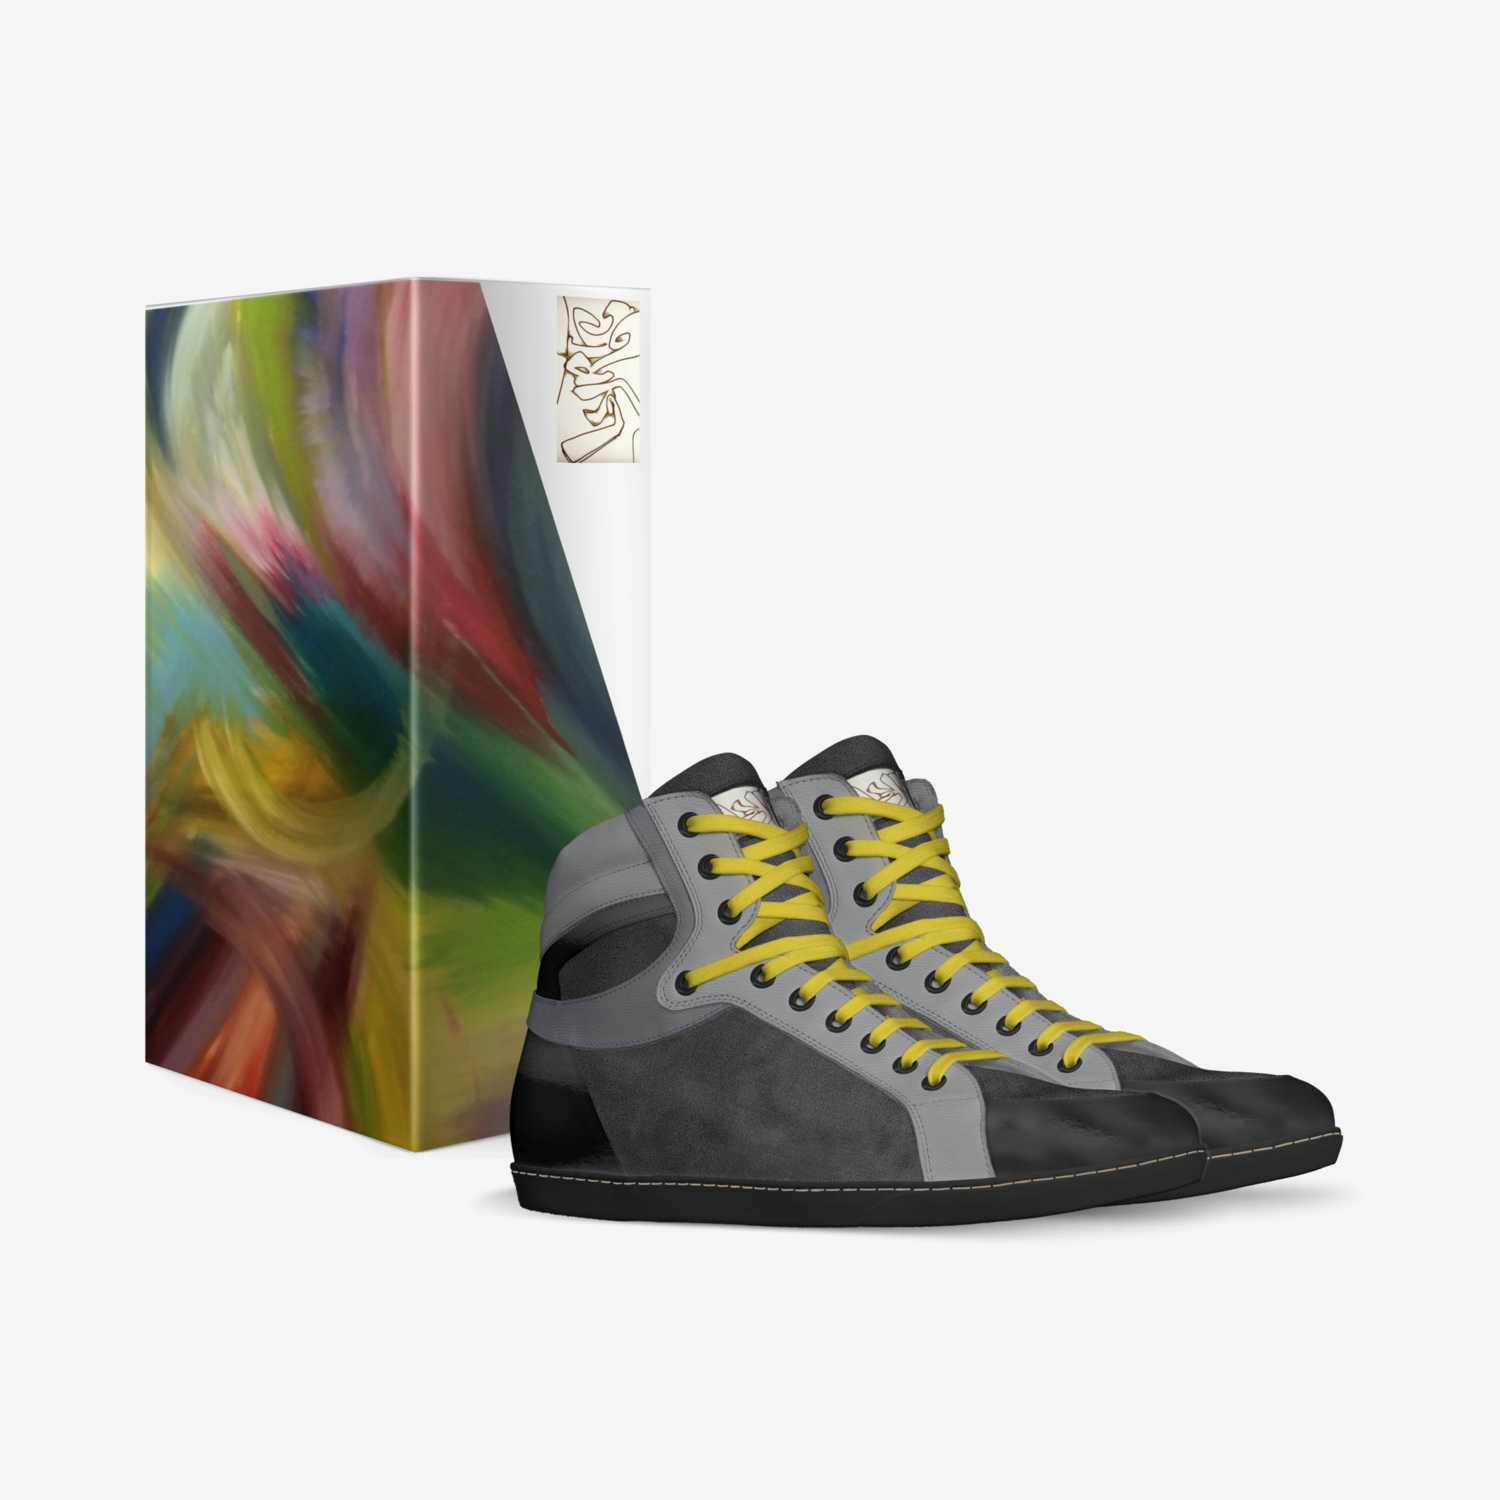 Lyrical custom made in Italy shoes by Clinton Daniel | Box view